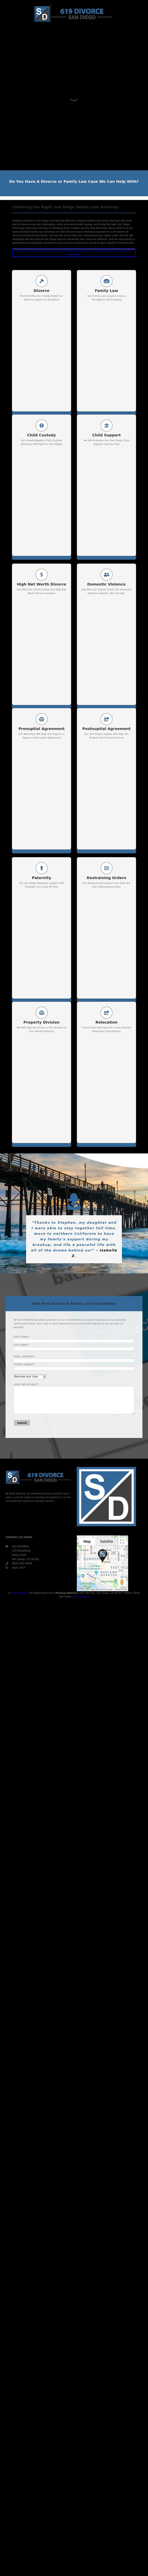 619 Divorce - San Diego CA Lawyers